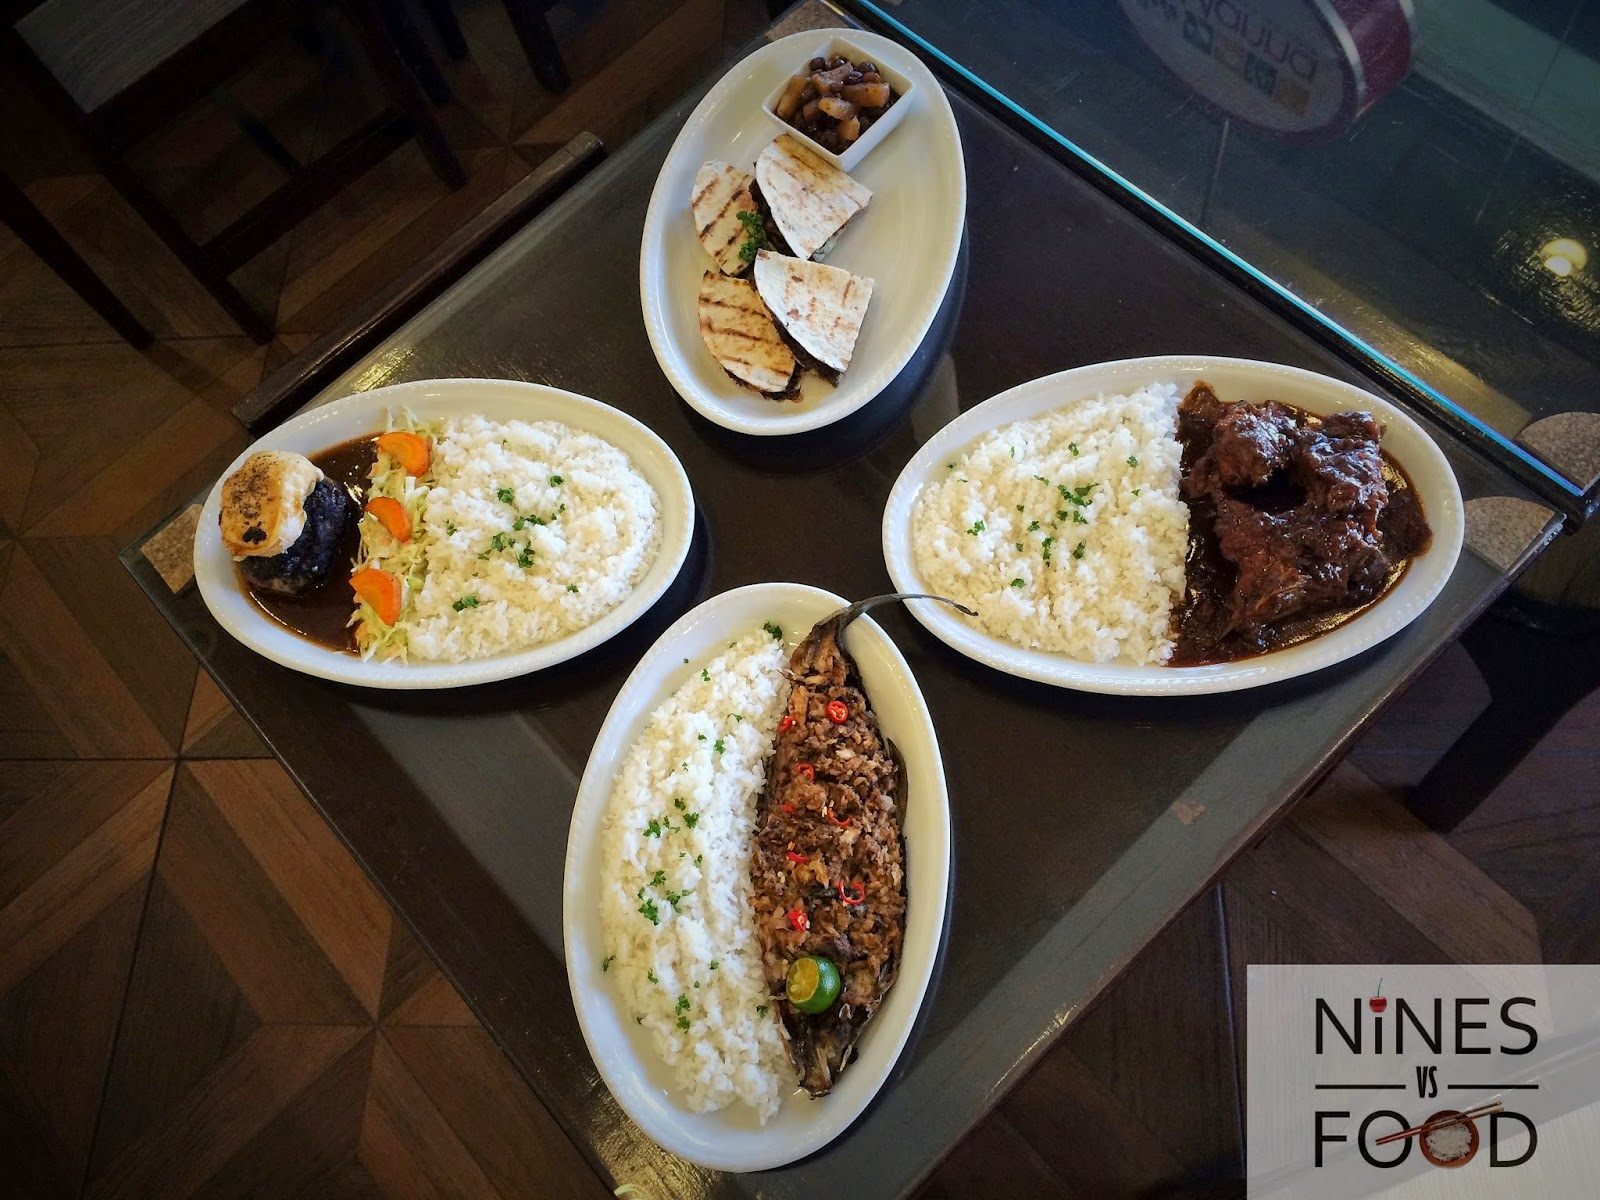 Nines vs. Food - Cafe PaManna Fairview-8.jpg